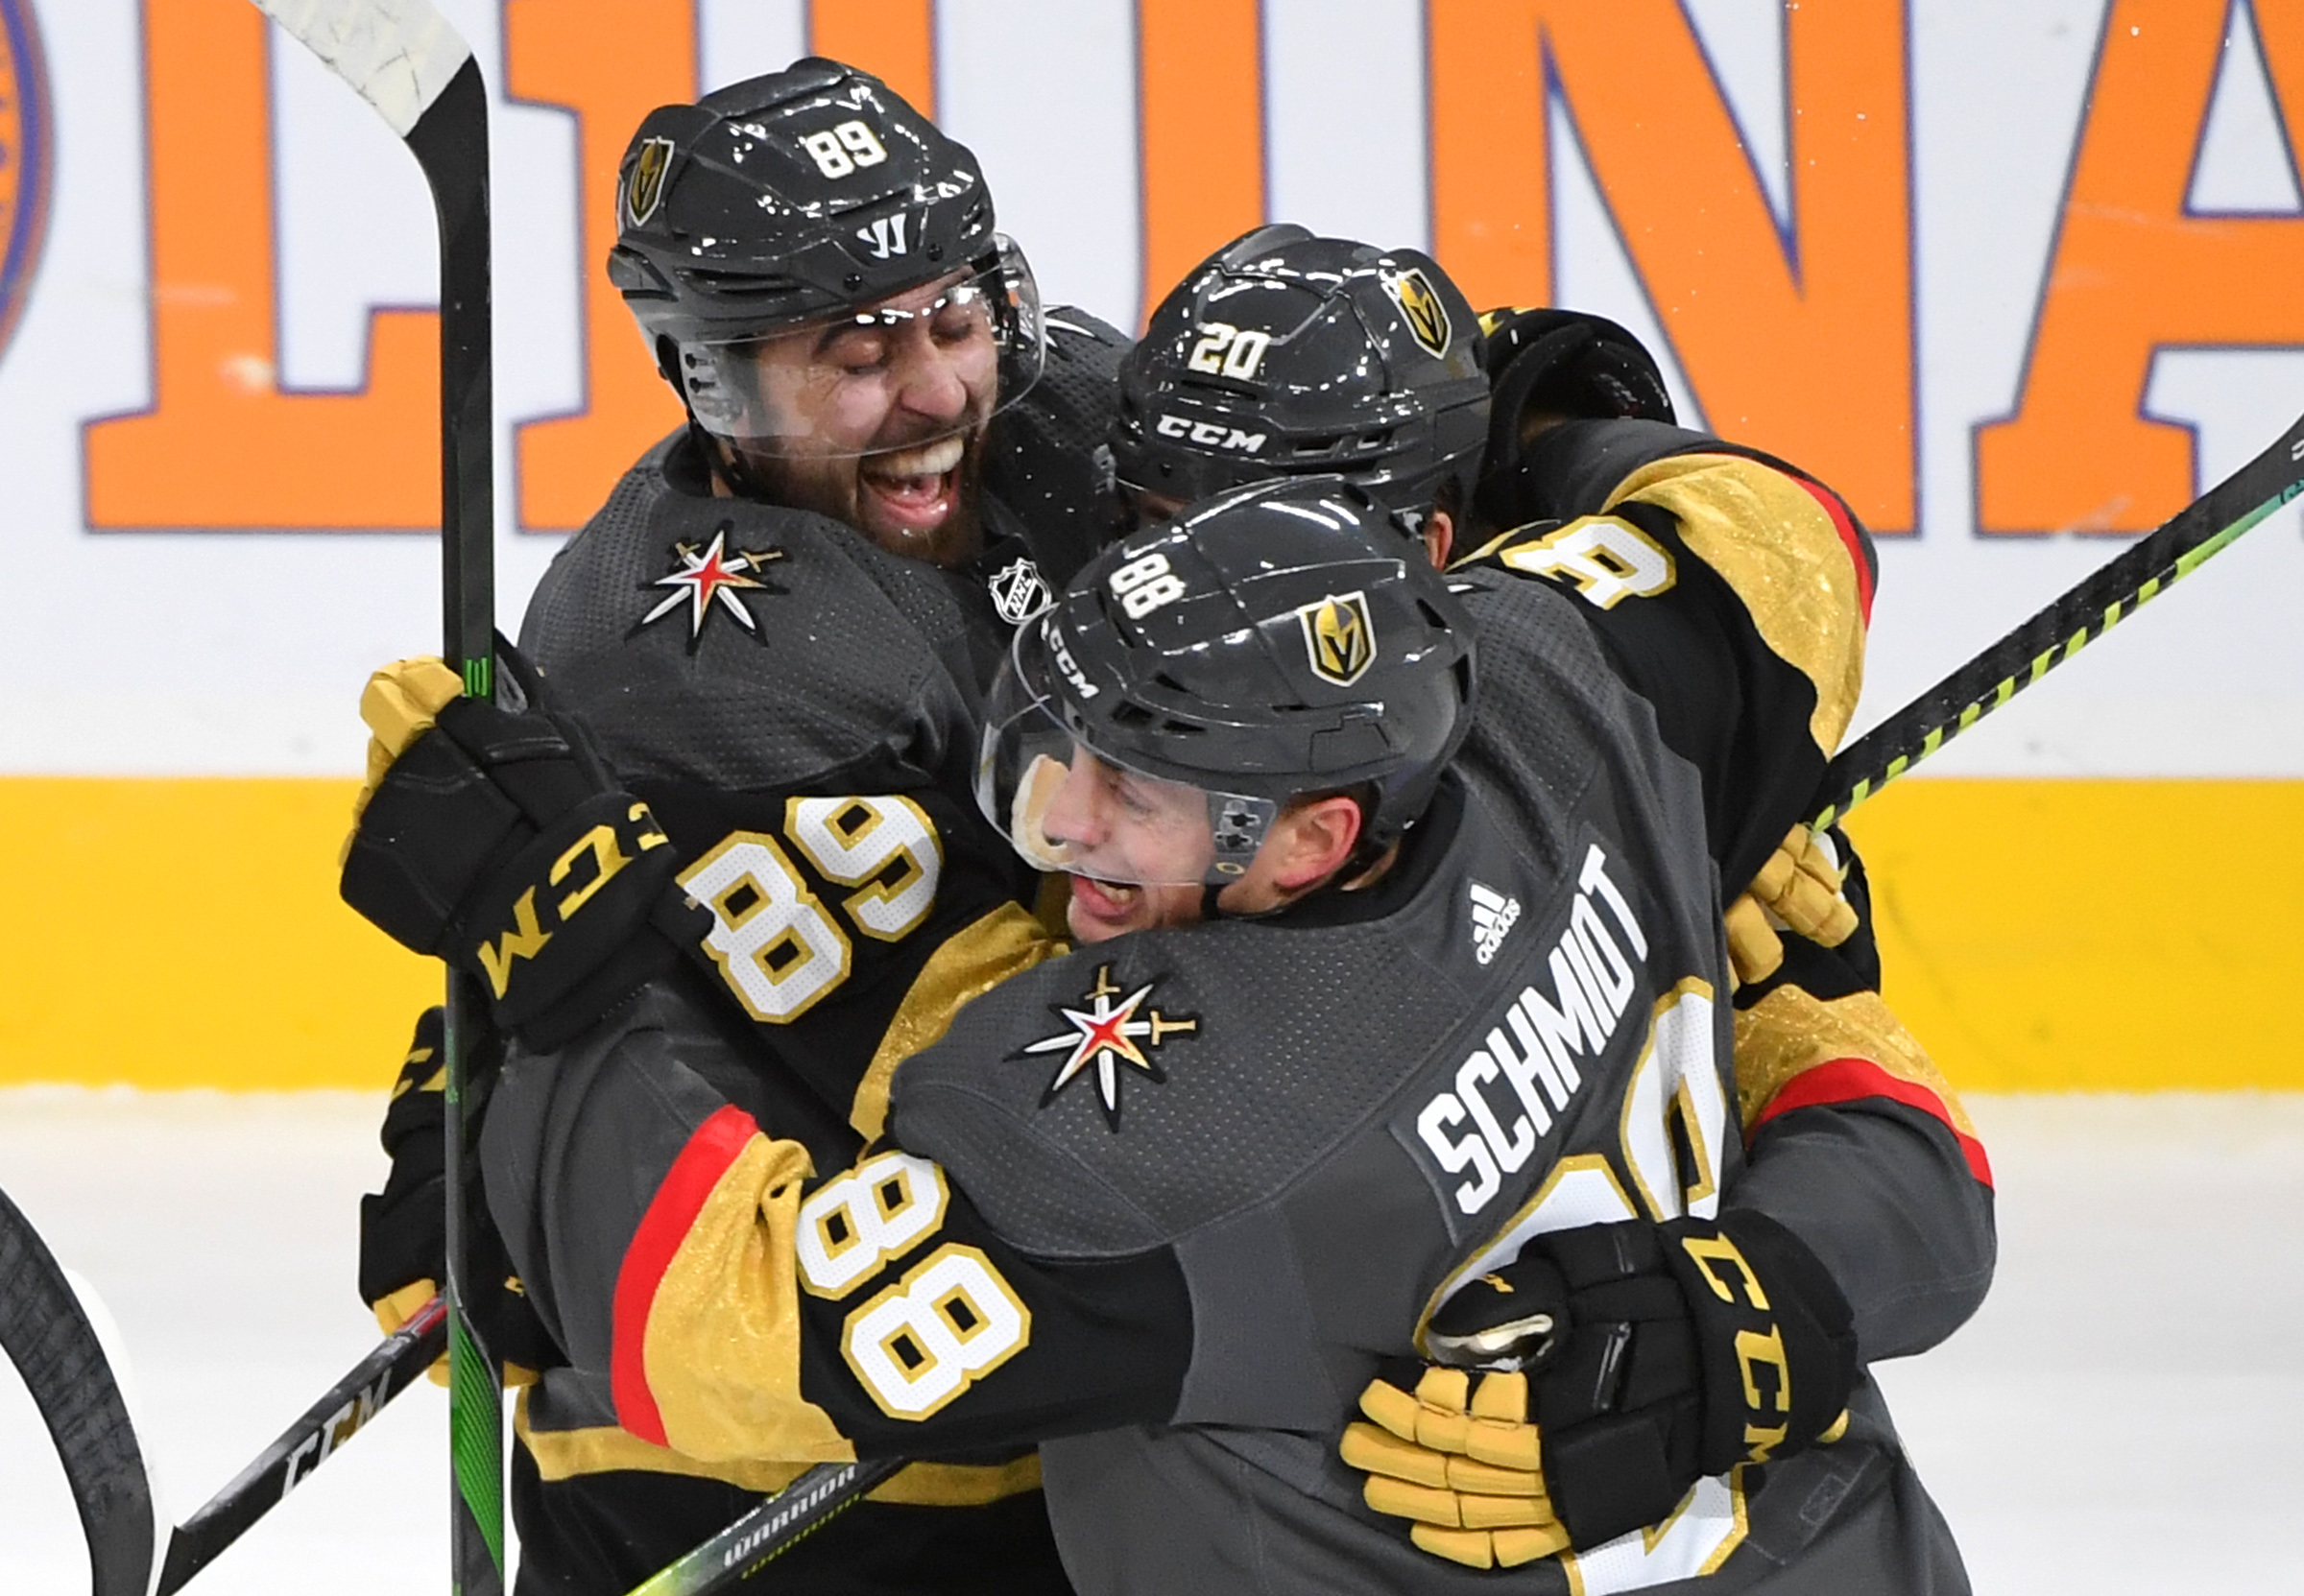 Jan 4, 2020; Las Vegas, Nevada, USA; Vegas Golden Knights players celebrate after Vegas Golden Knights center Chandler Stephenson (20) scored in overtime to give the Golden Knights a 5-4 victory over the St. Louis Blues at T-Mobile Arena.